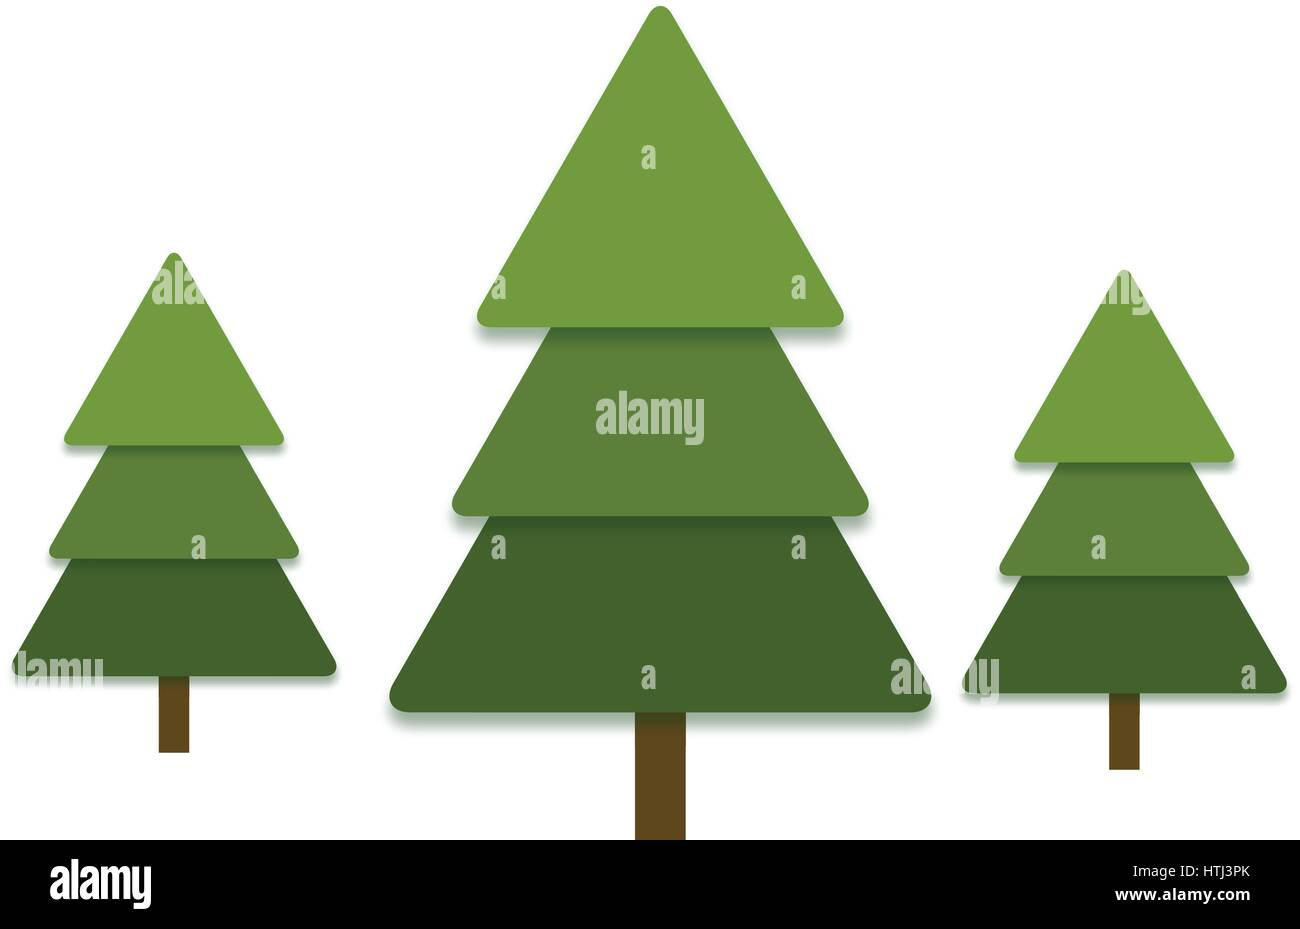 Pine tree isolated icon vector stockfotos pine tree isolated icon vector bilder alamy - Weihnachtsbaum vektor ...